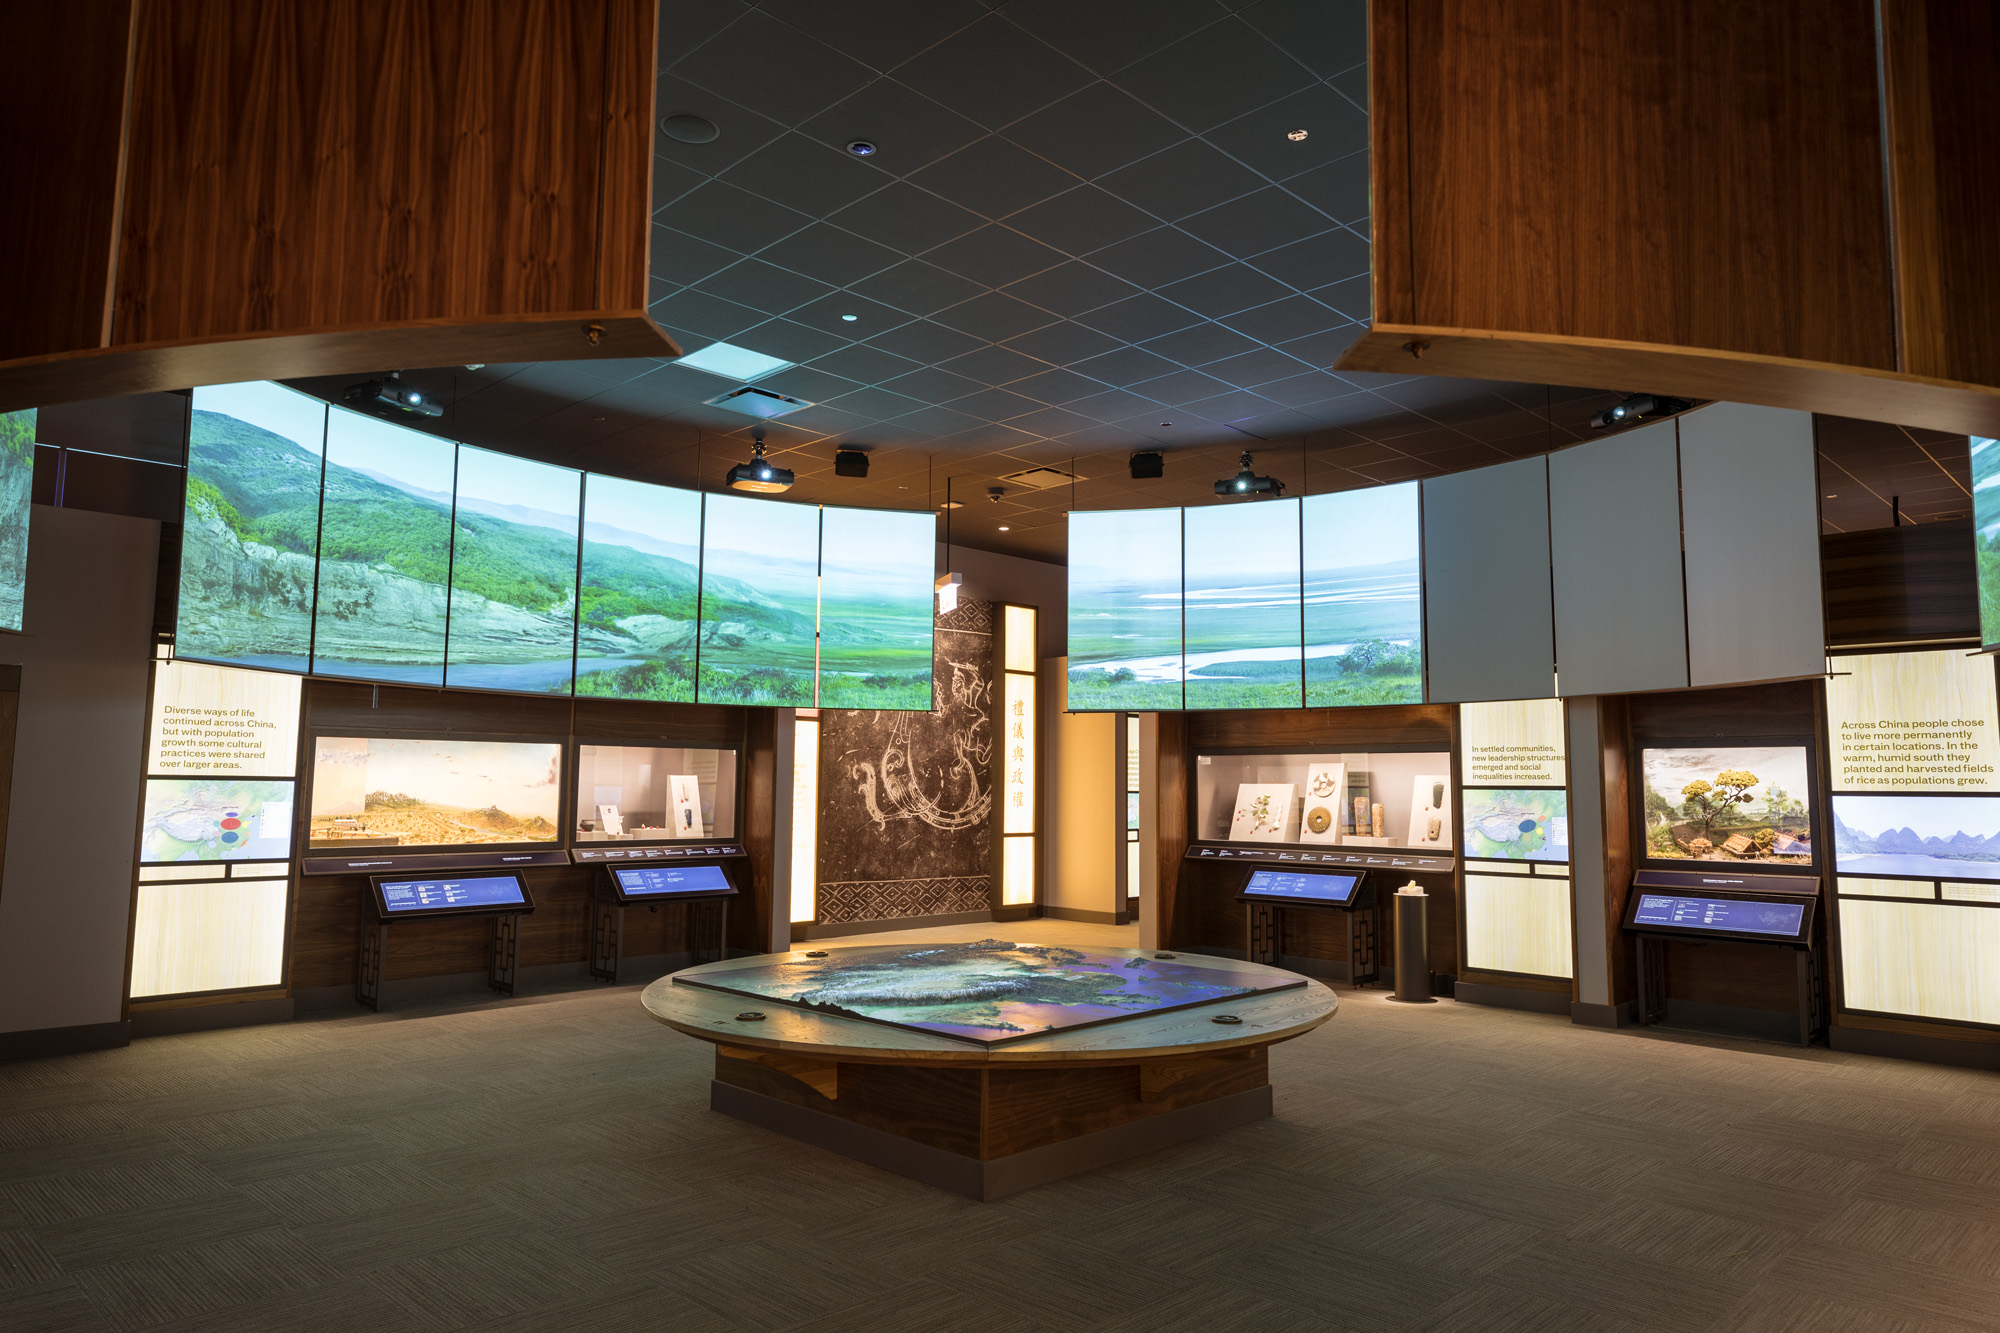 The first gallery of the Cyrus Tang Hall of China, with map table in the foreground and a large circle of video screens above the exhibition display cases.